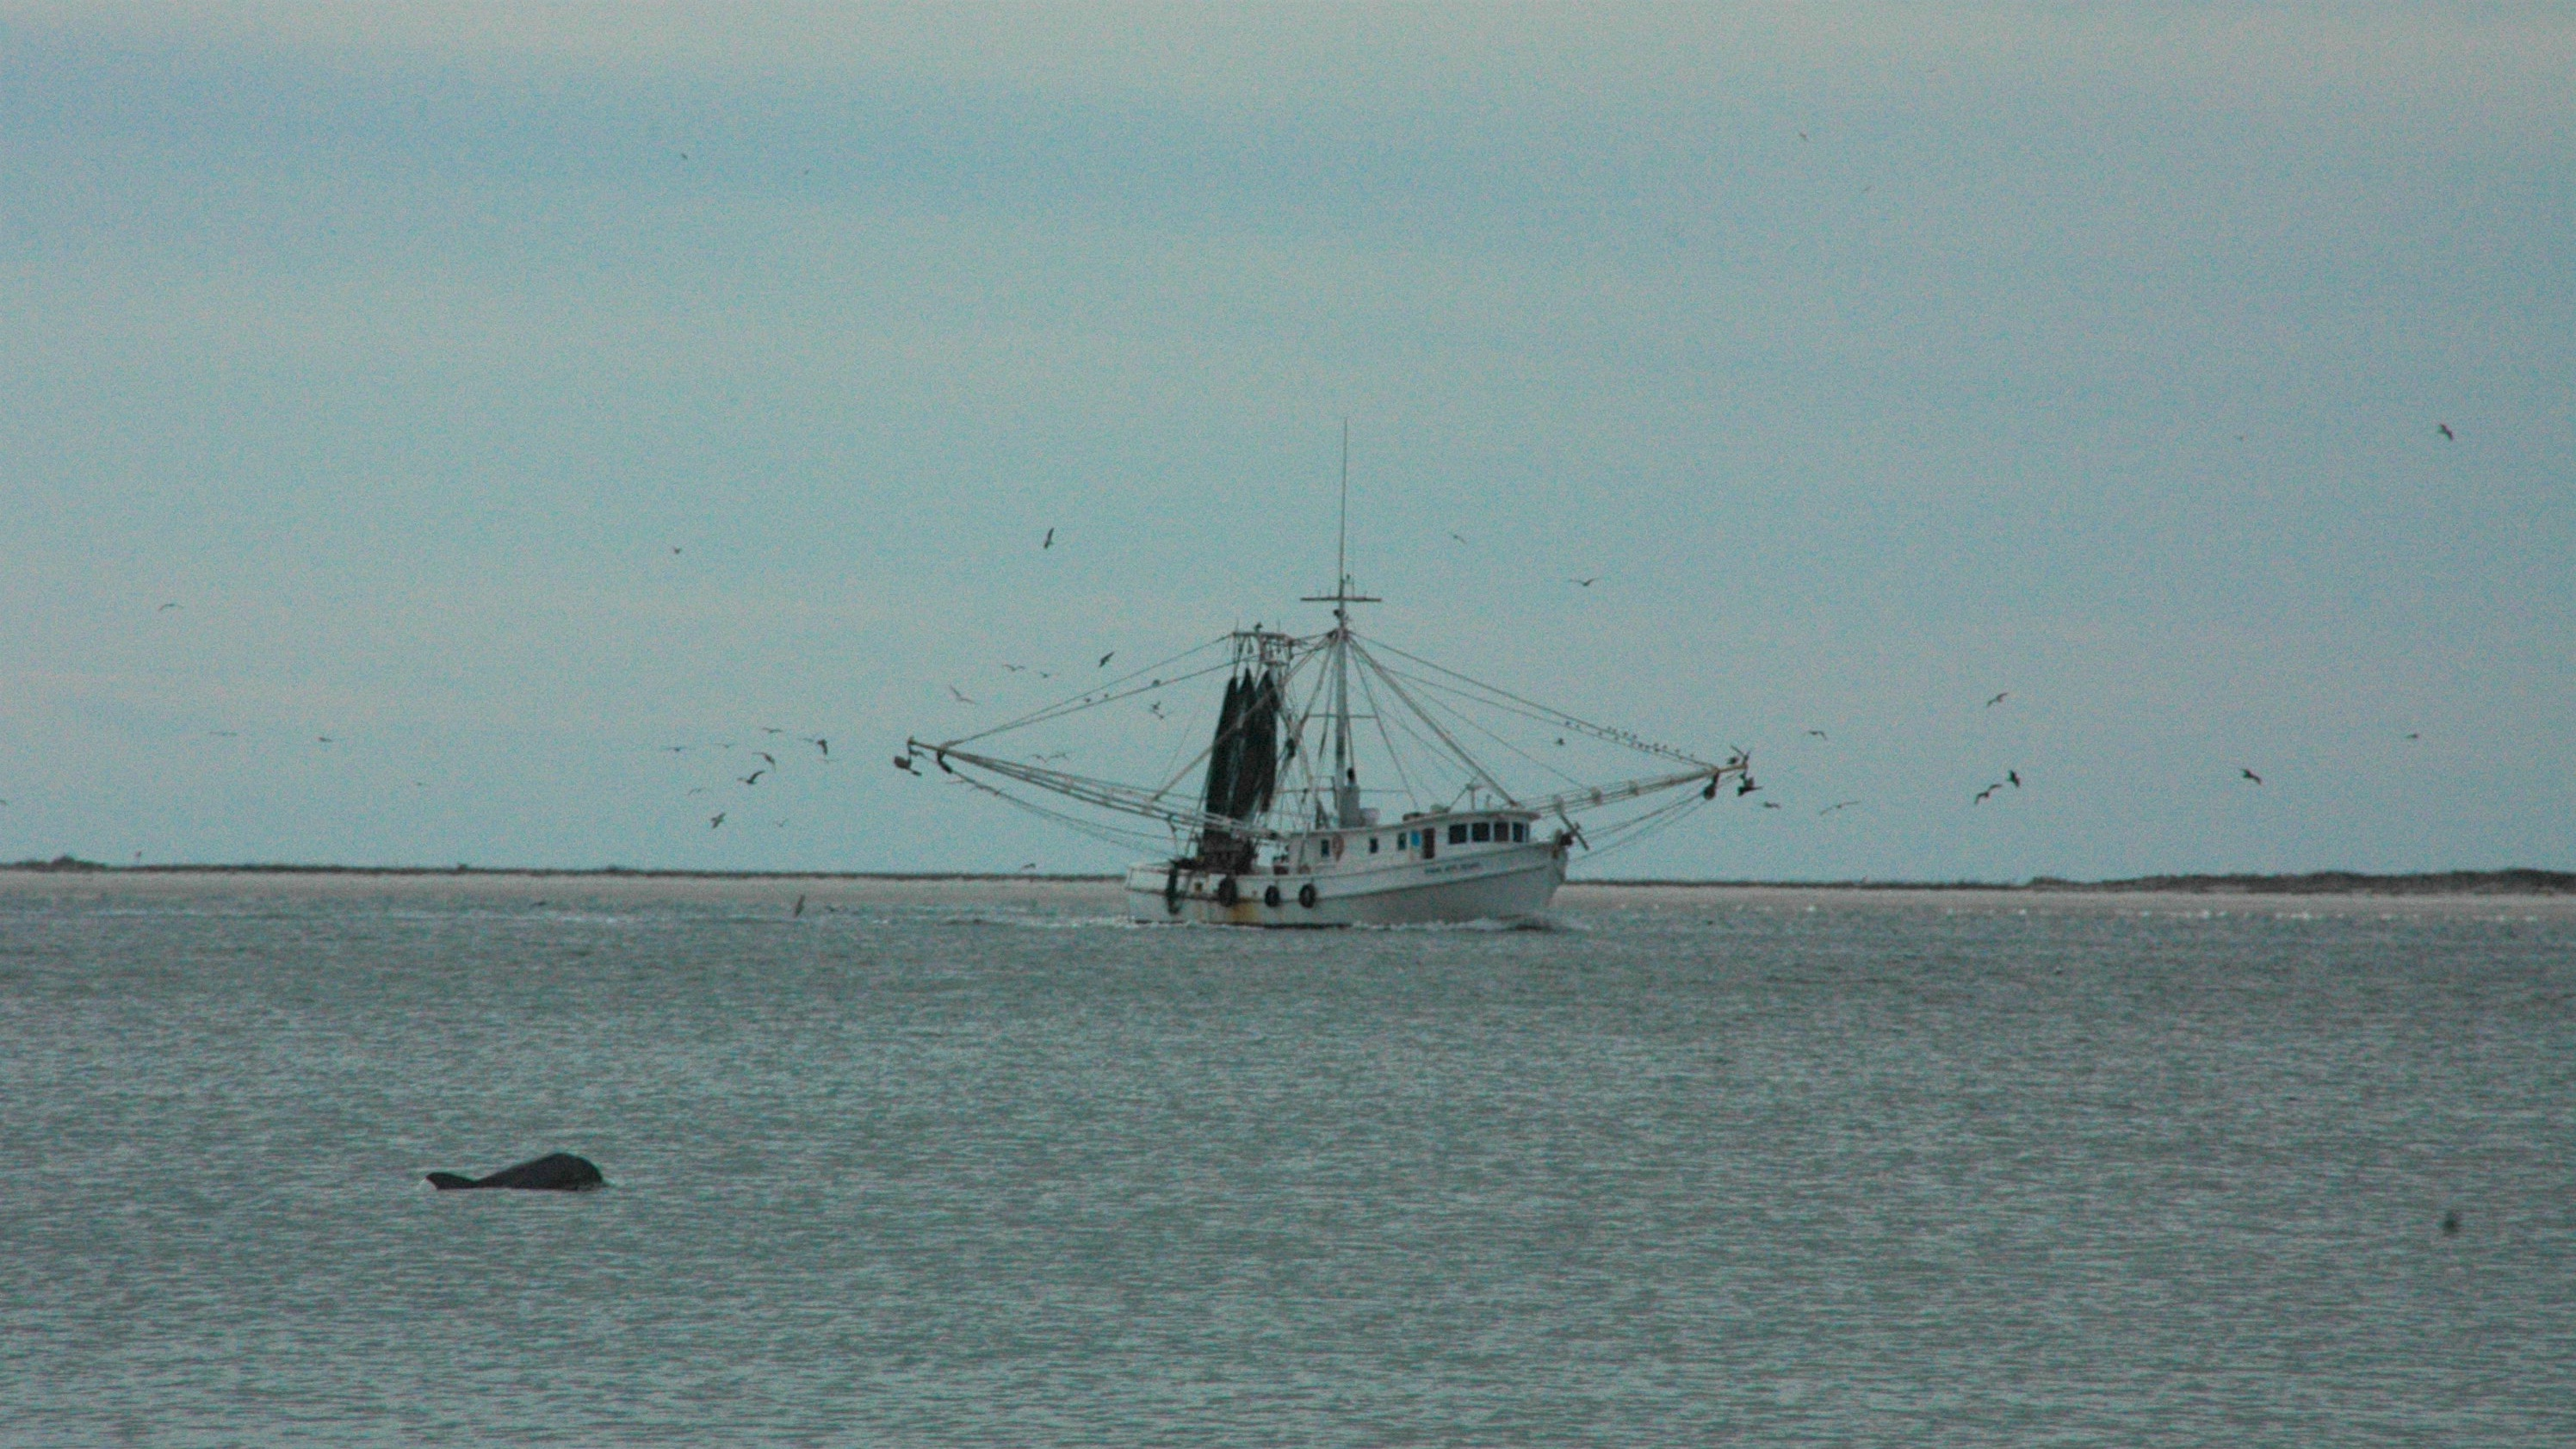 Dolphin follow a shrimp boat trolling in the river.